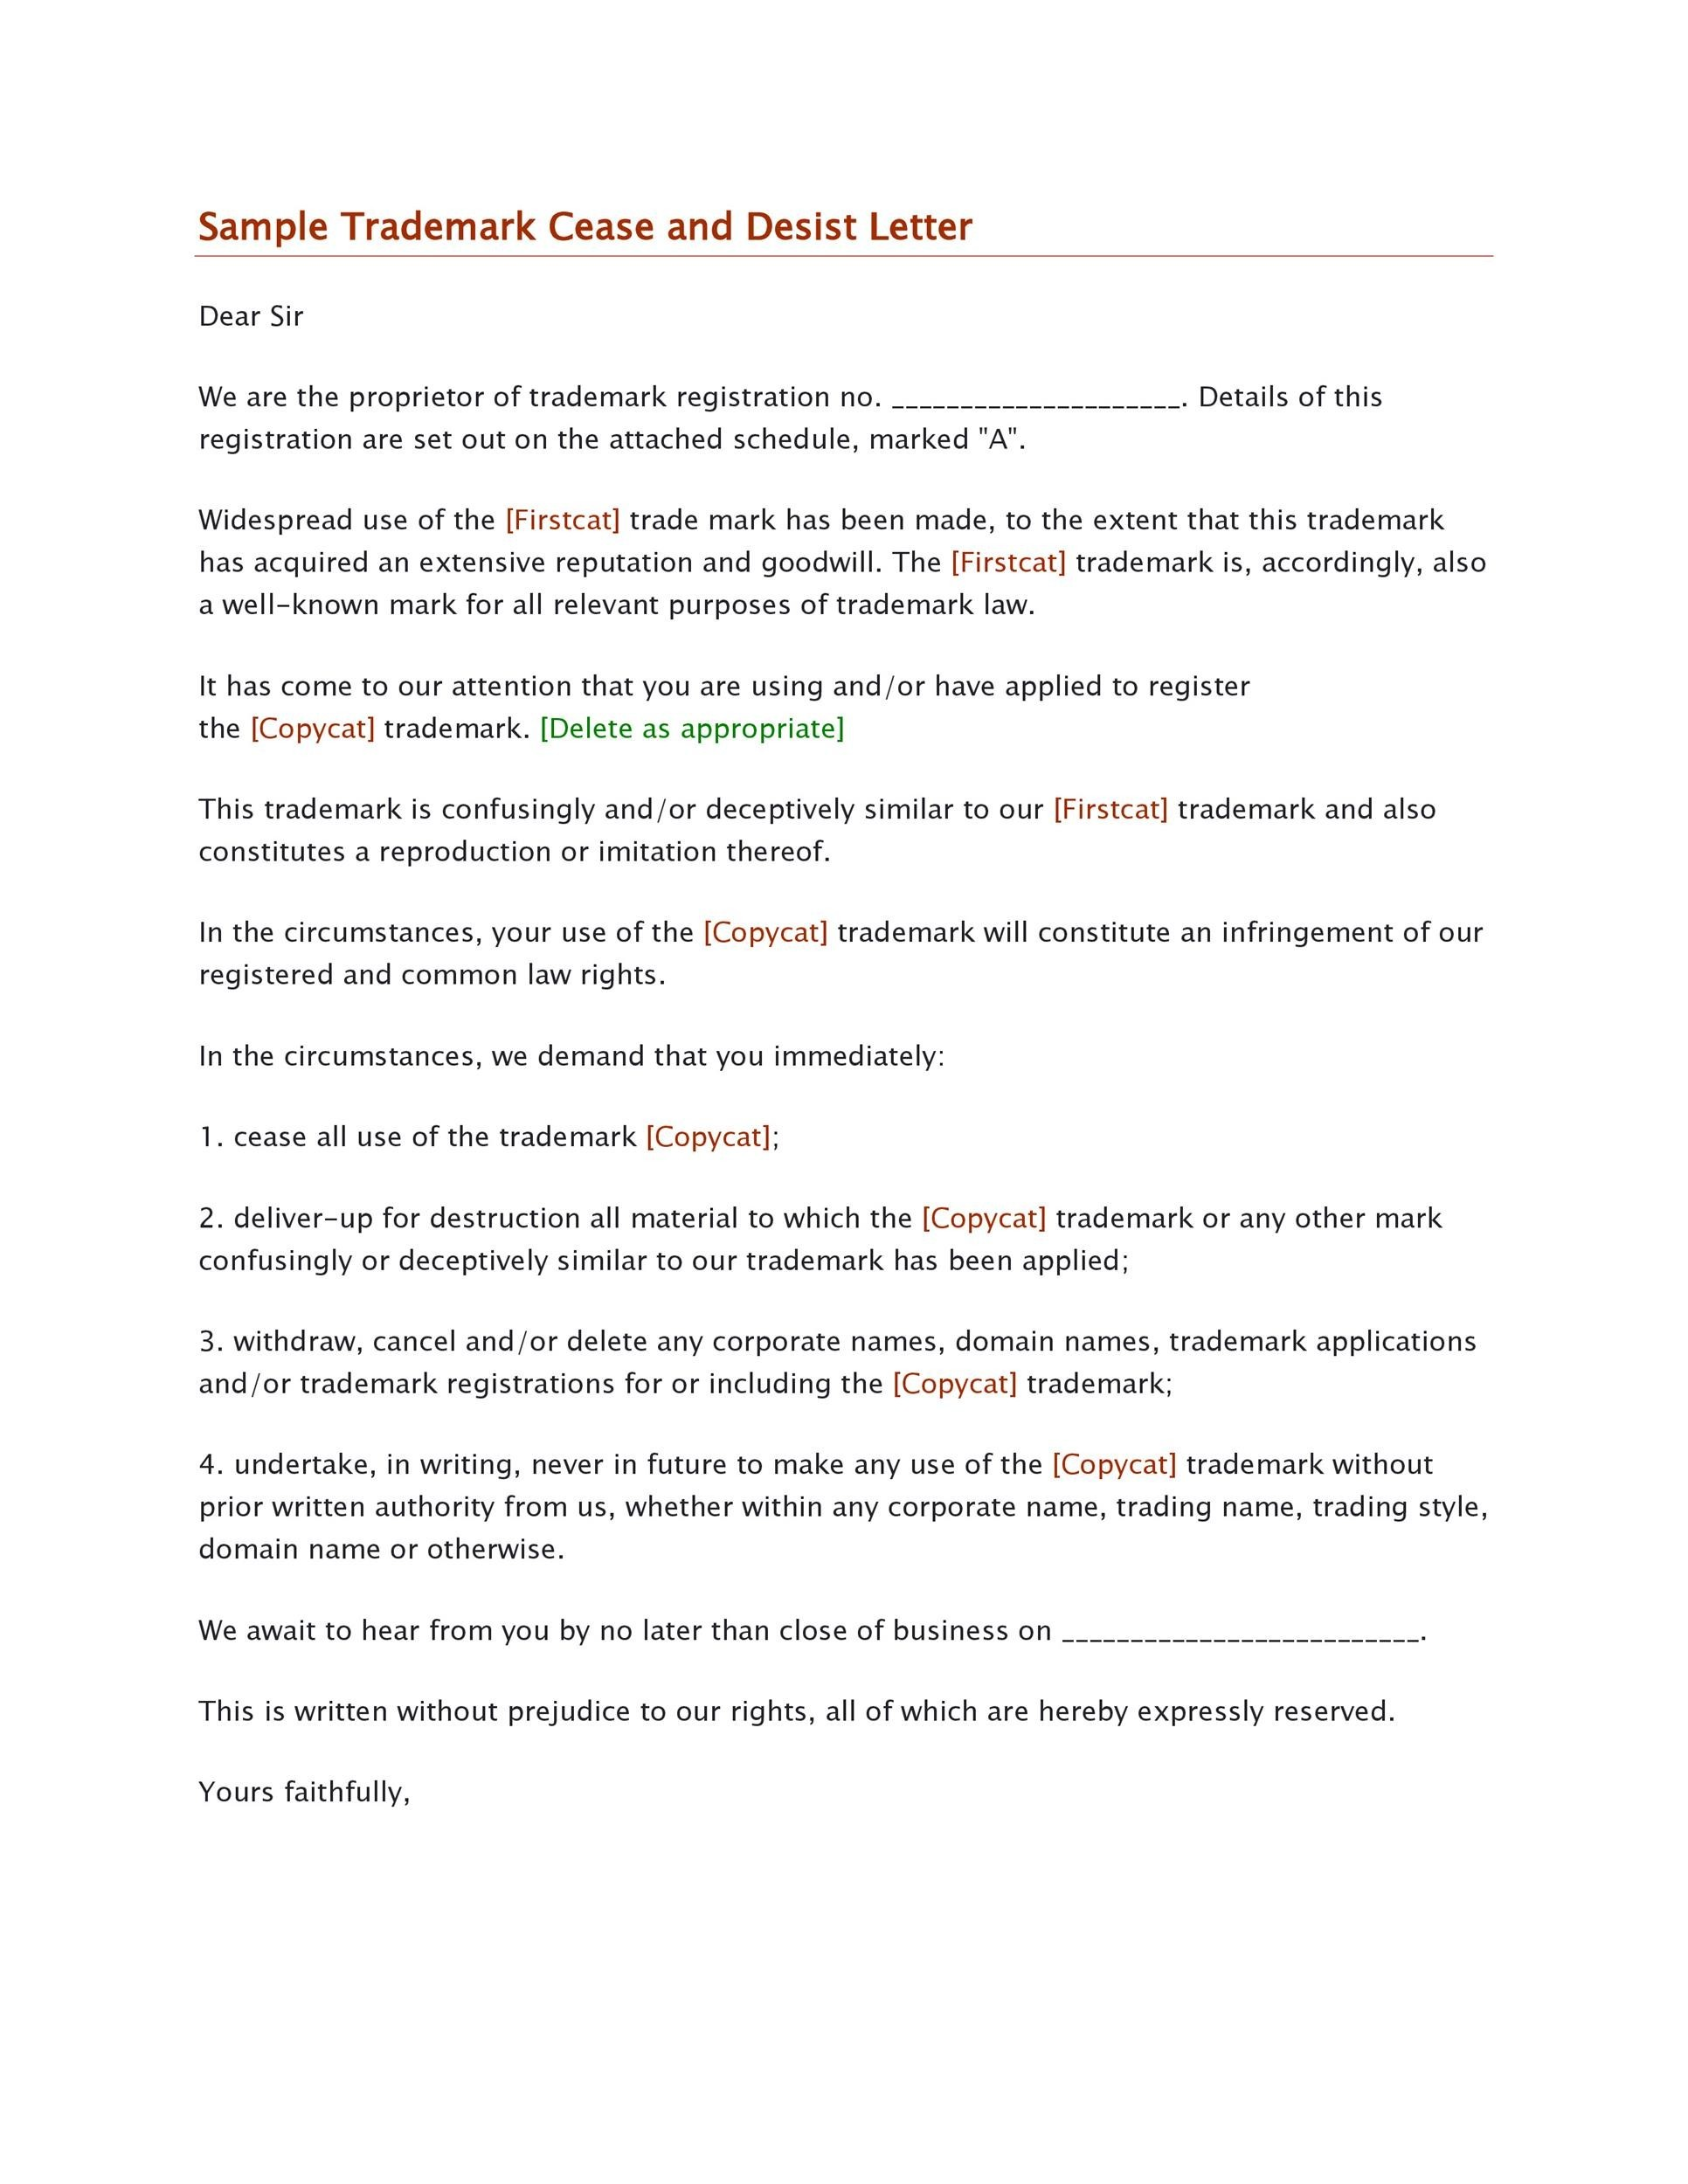 30+ Cease and Desist Letter Templates FREE - Template Lab - cease and desist sample letter